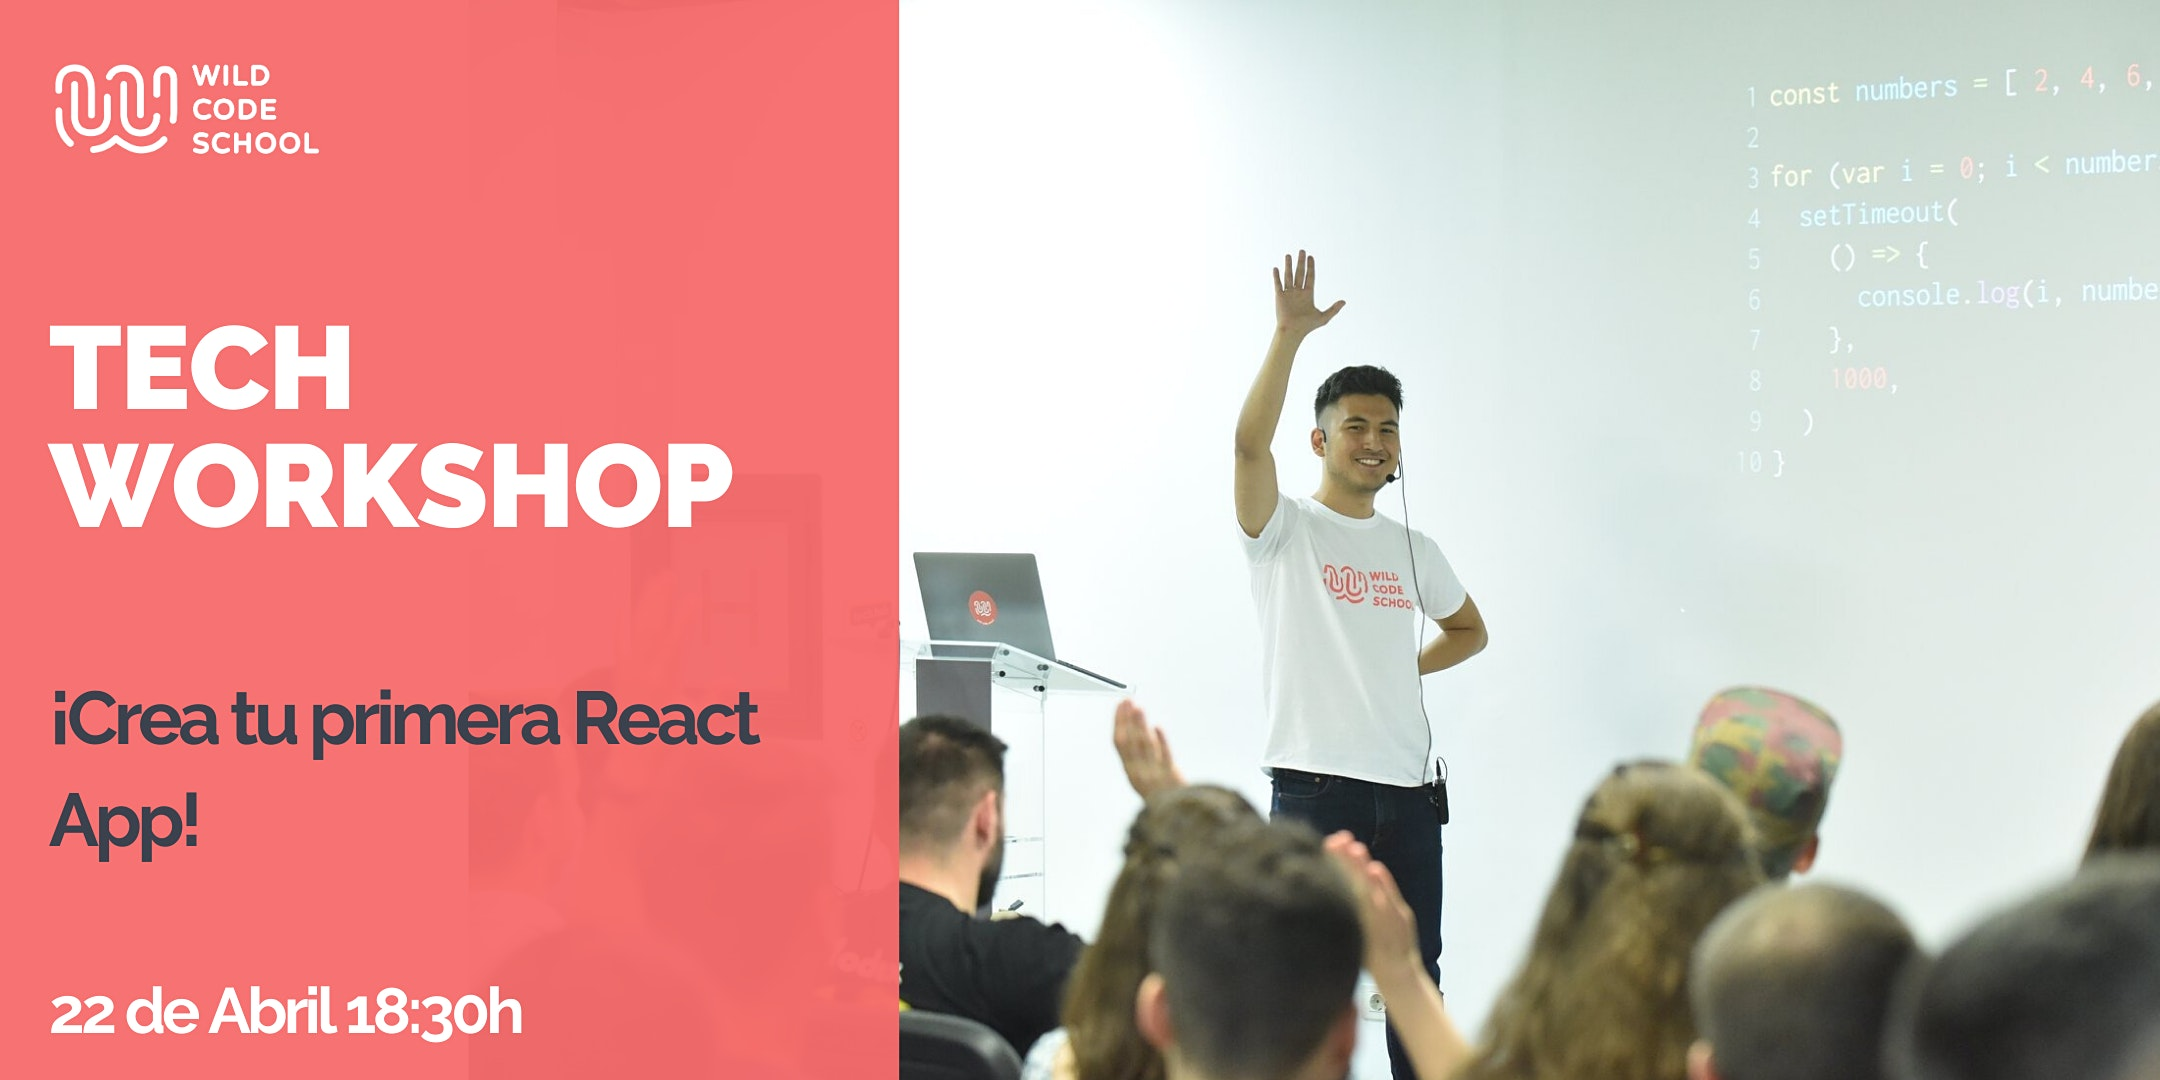 TECH WORKSHOP: React para iniciantes ¡Crea tu primera App!